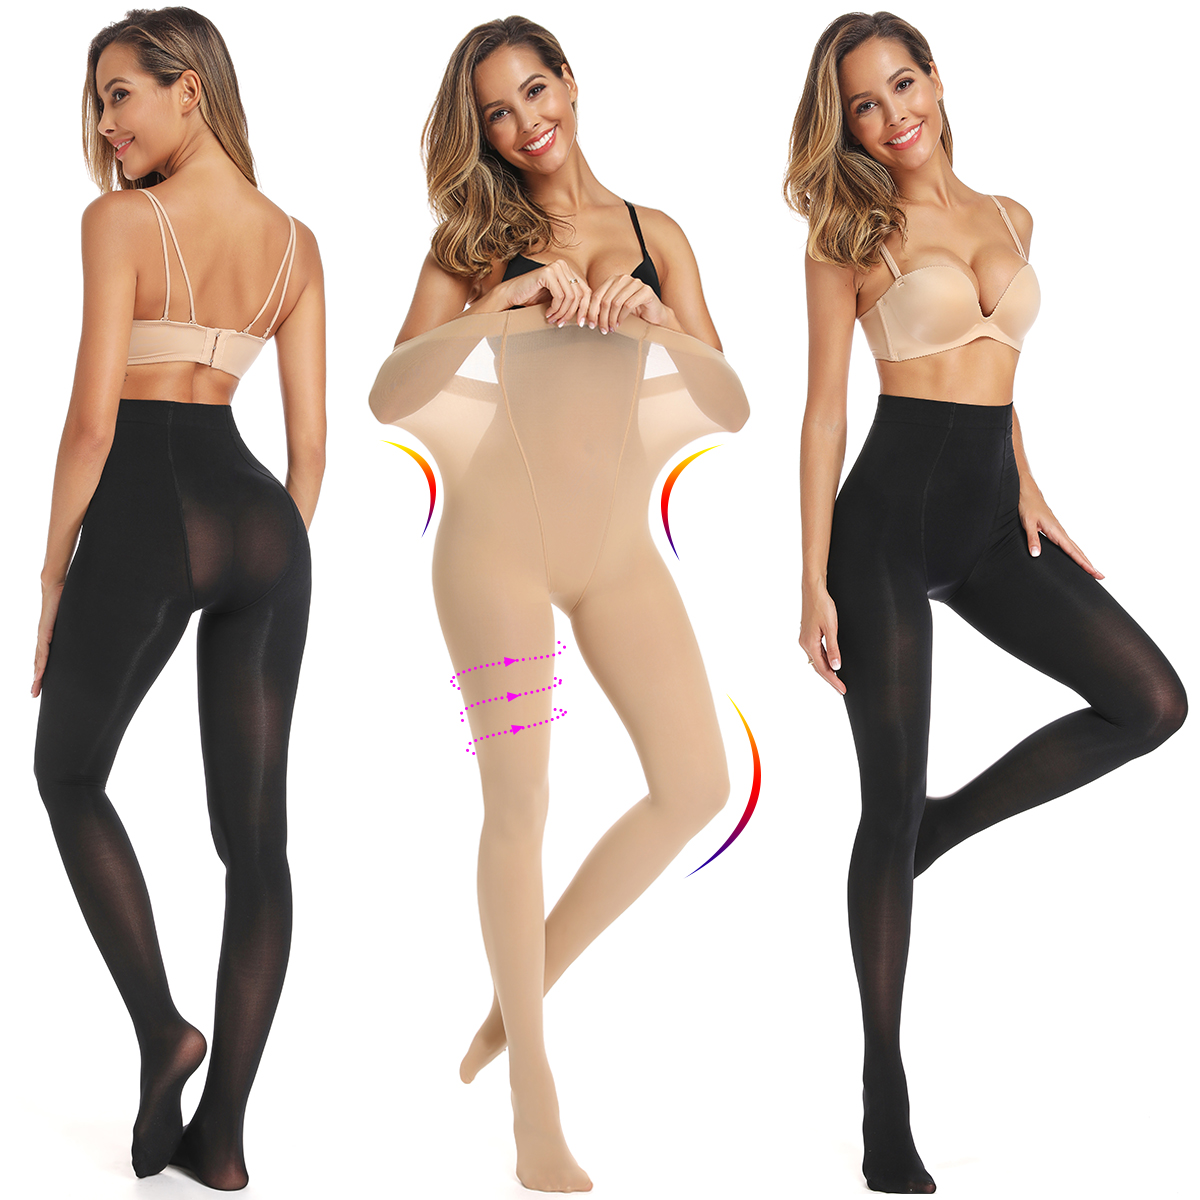 Women Stockings Sexy Pantyhose Lingerie Tummy Control Shaper Elastic Over Knee Slim Female Hosiery Opaque Footed Tights чулки